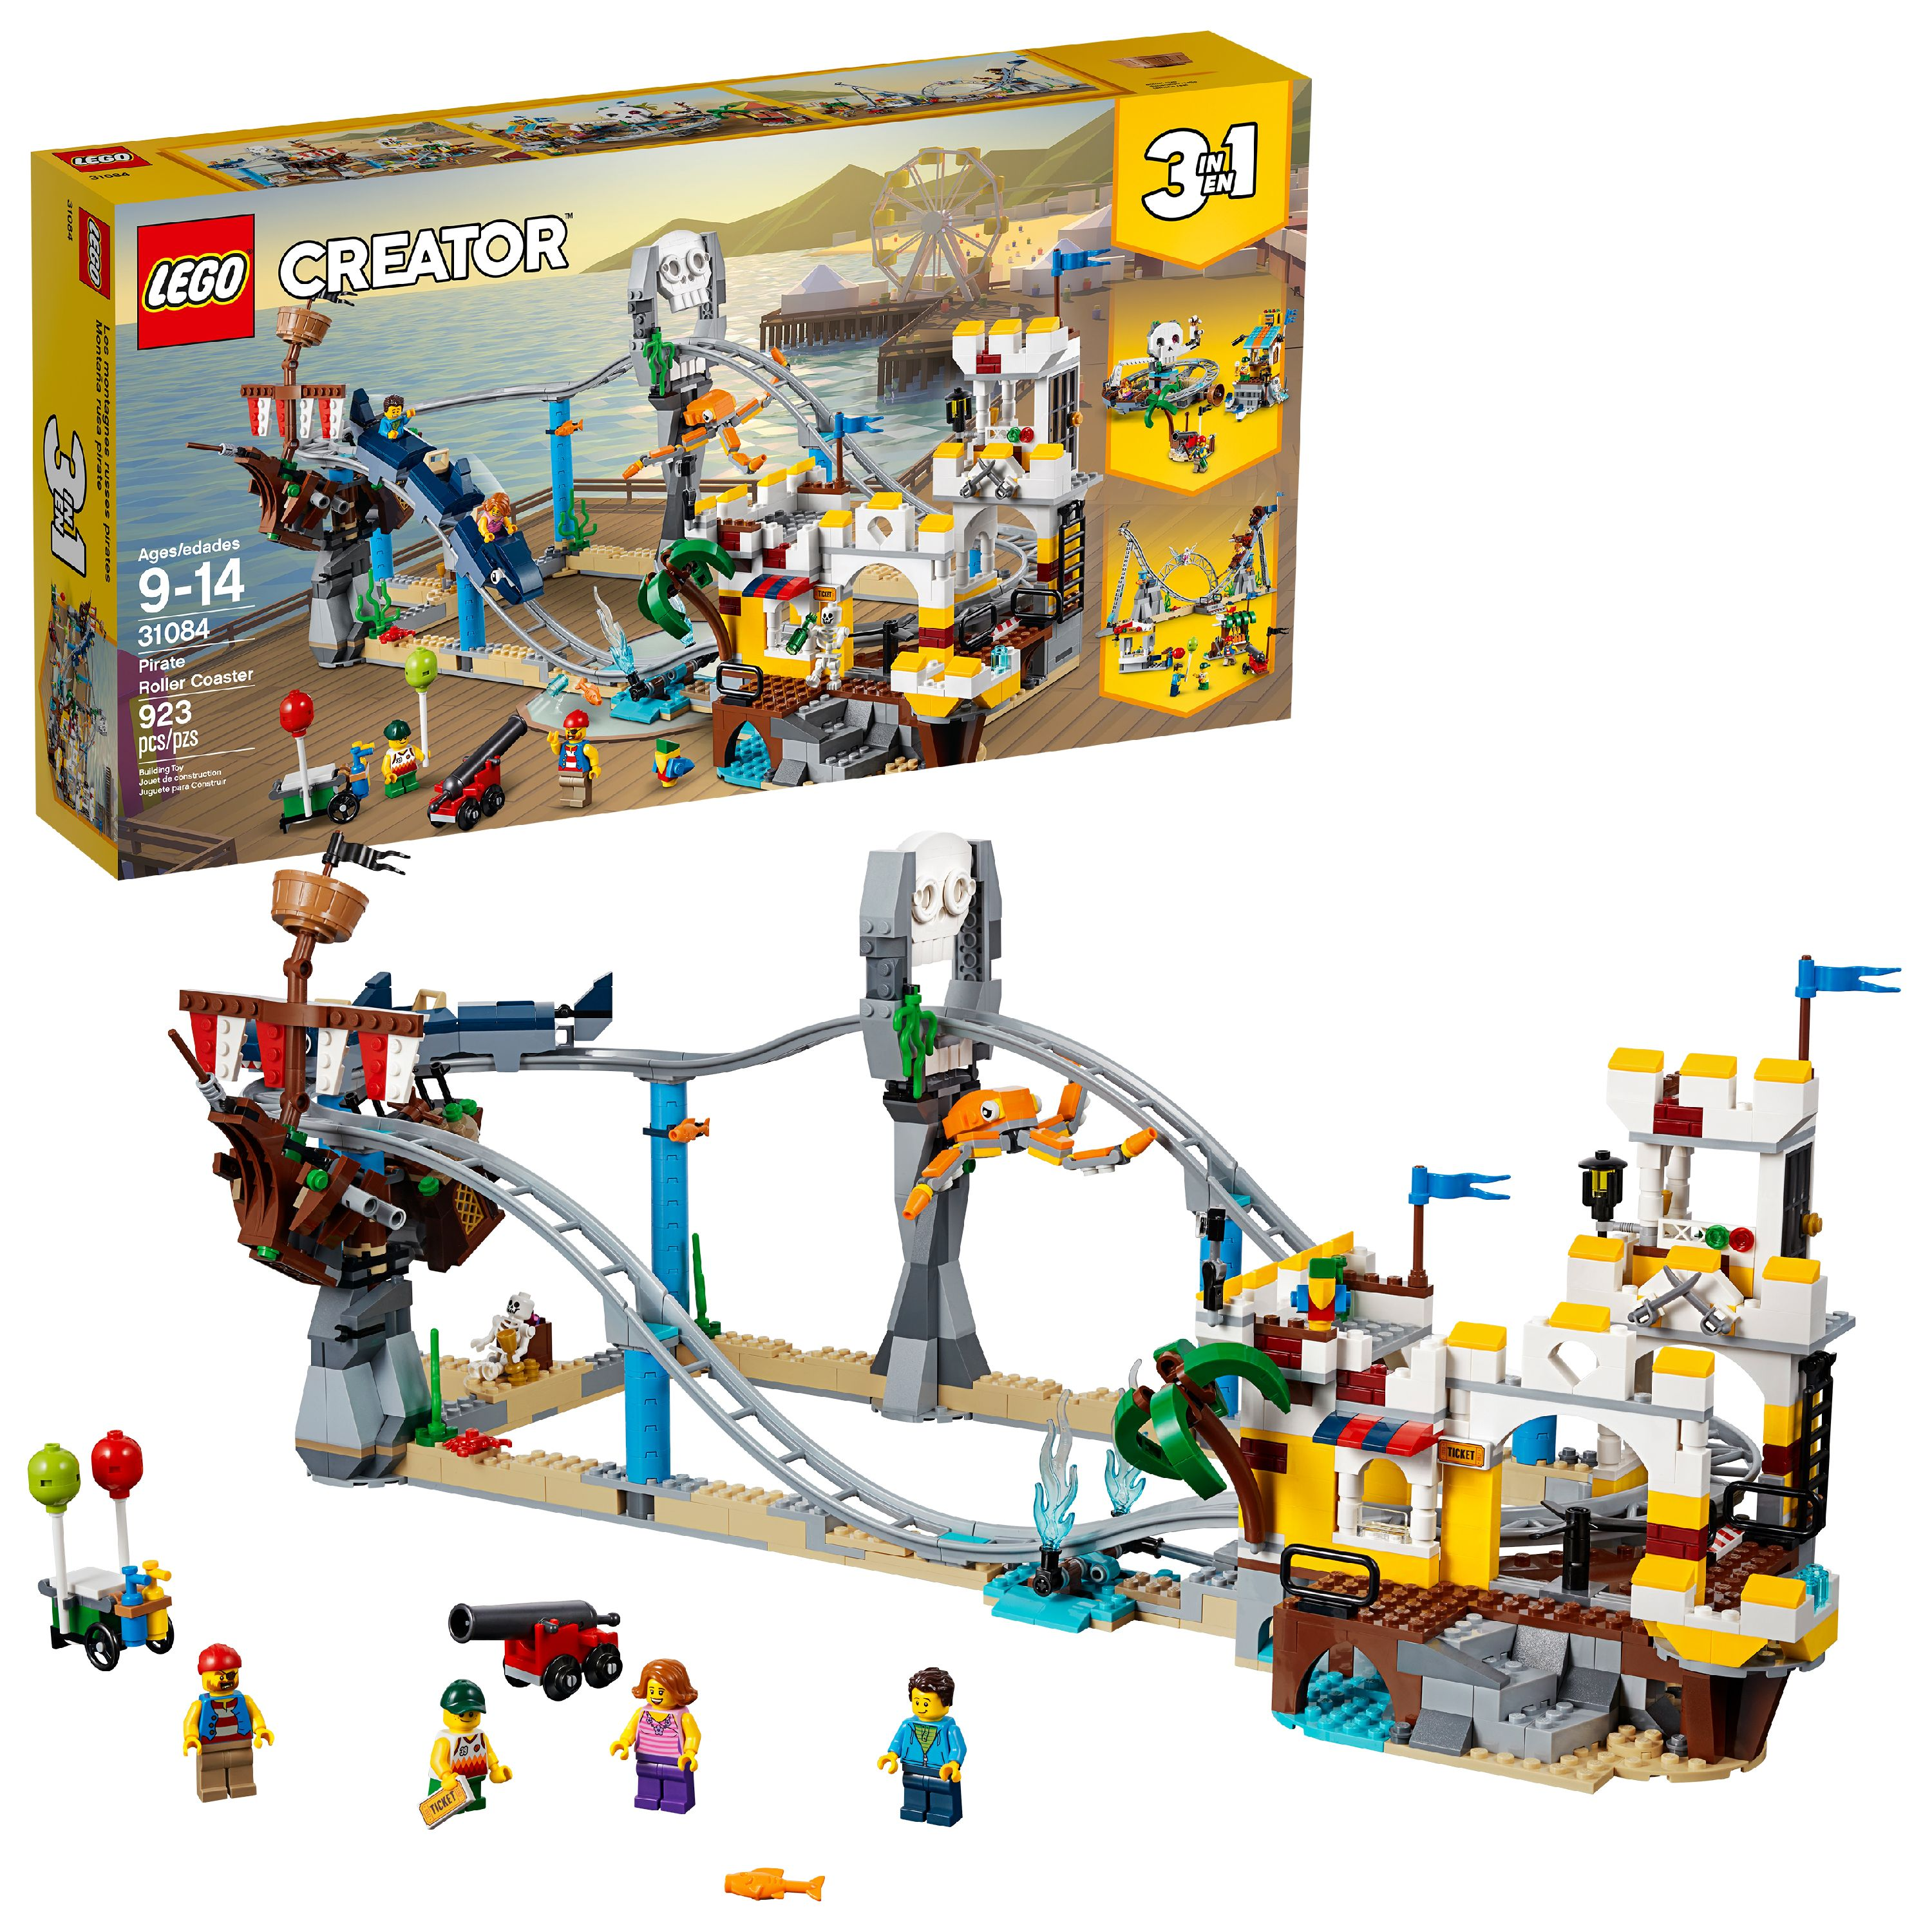 Lego Creator 3in1 Pirate Roller Coaster 31084 (923 Pieces) by LEGO System Inc